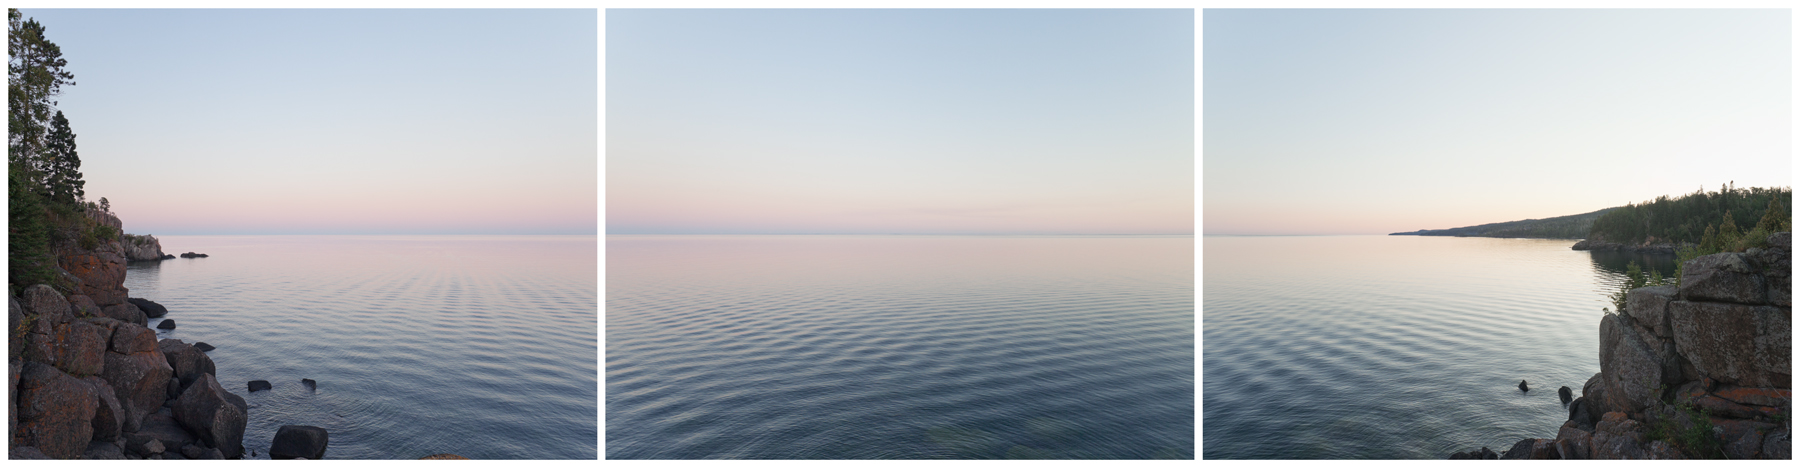 TriptychTemplate_LakeSuperior2_plus_WithBorders